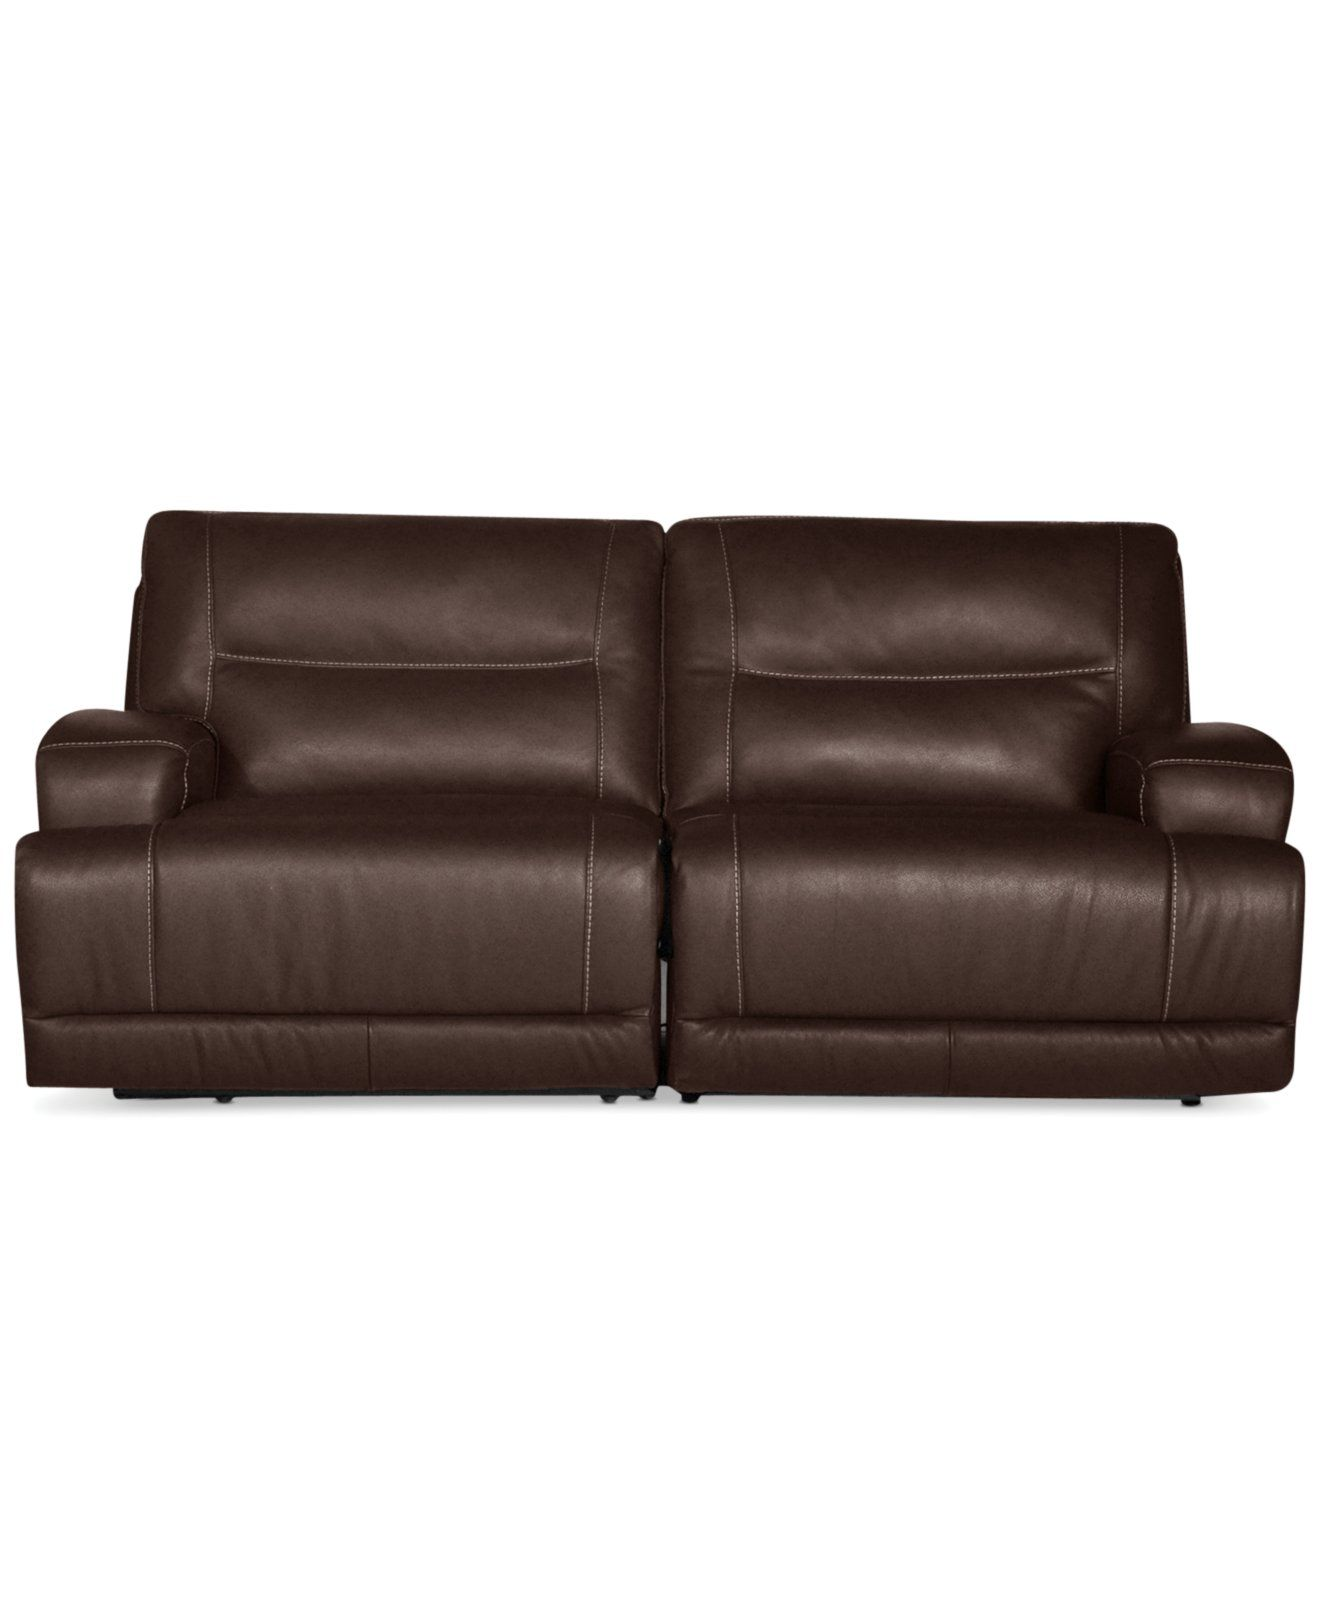 Caruso Leather 2 Piece Power Motion Sectional Sofa Furniture